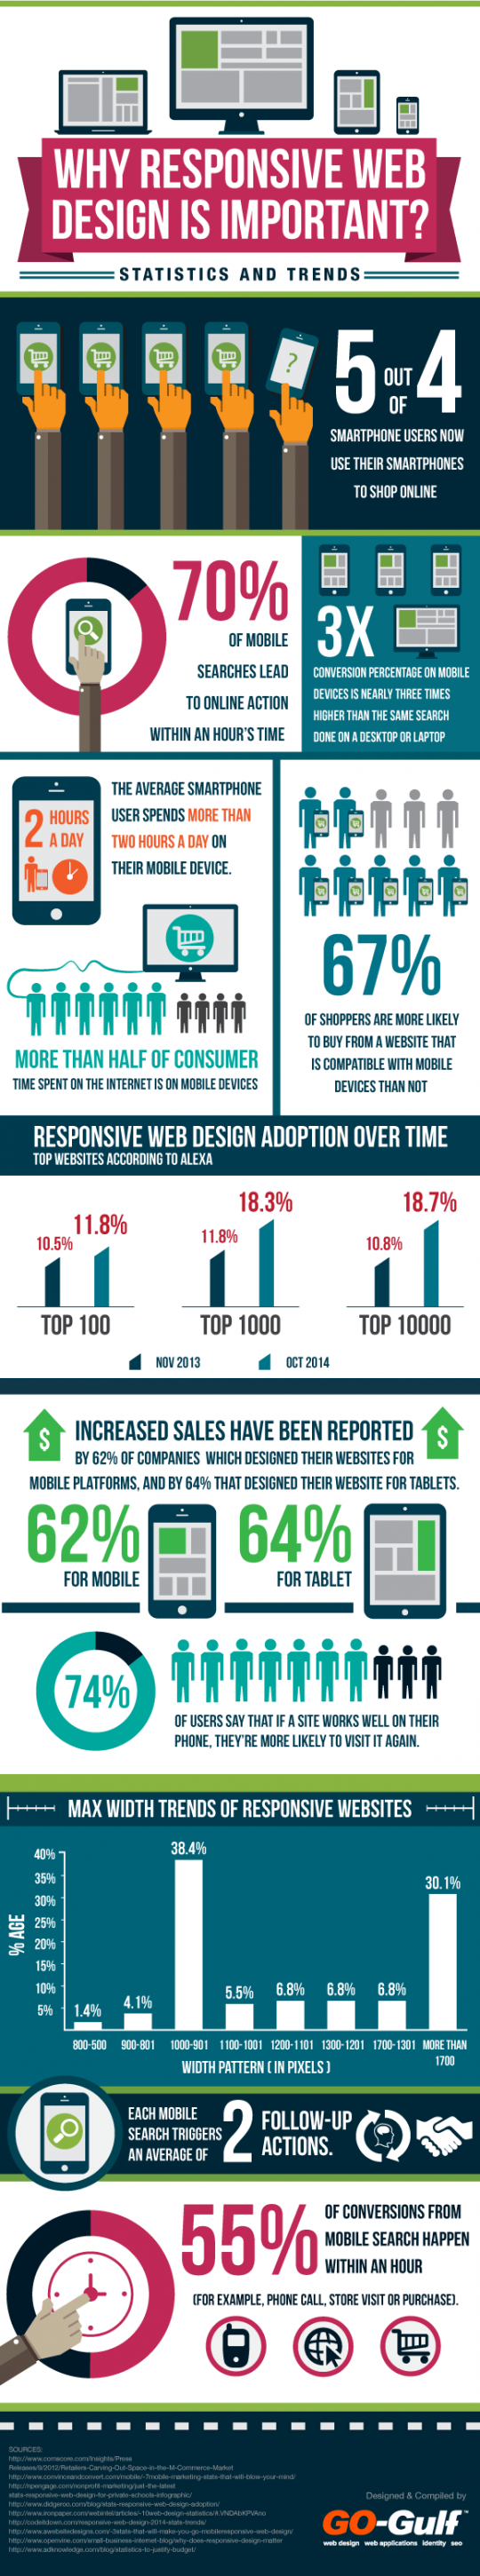 Why Responsive Web Design Is Important